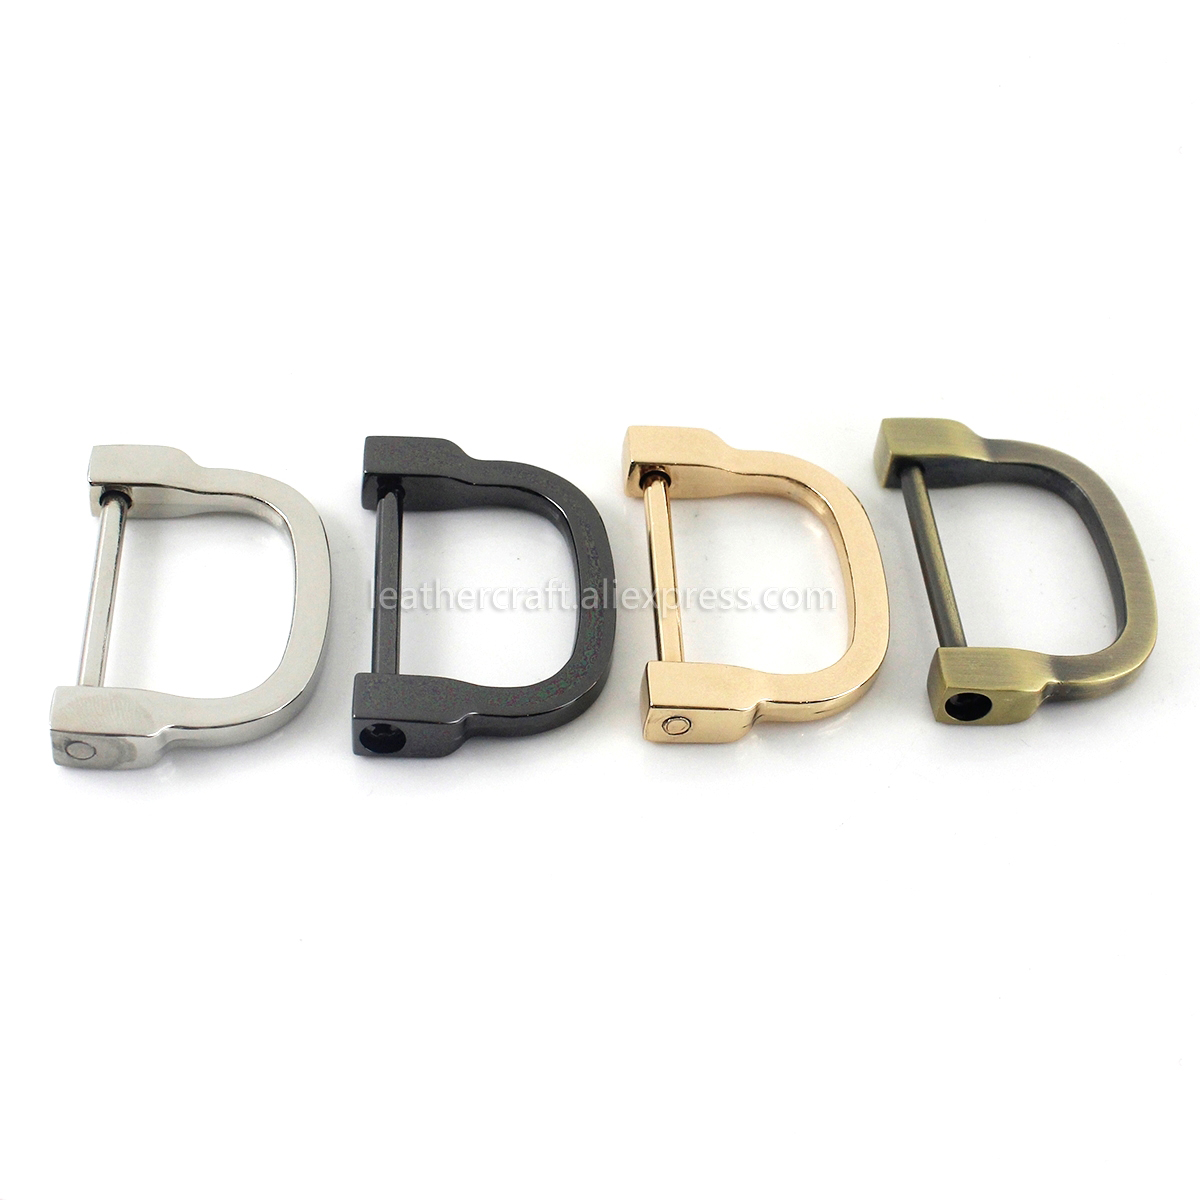 D rings O ring Rectangle square Metal Buckle Loop Webbing Leather Craft X 2pcs